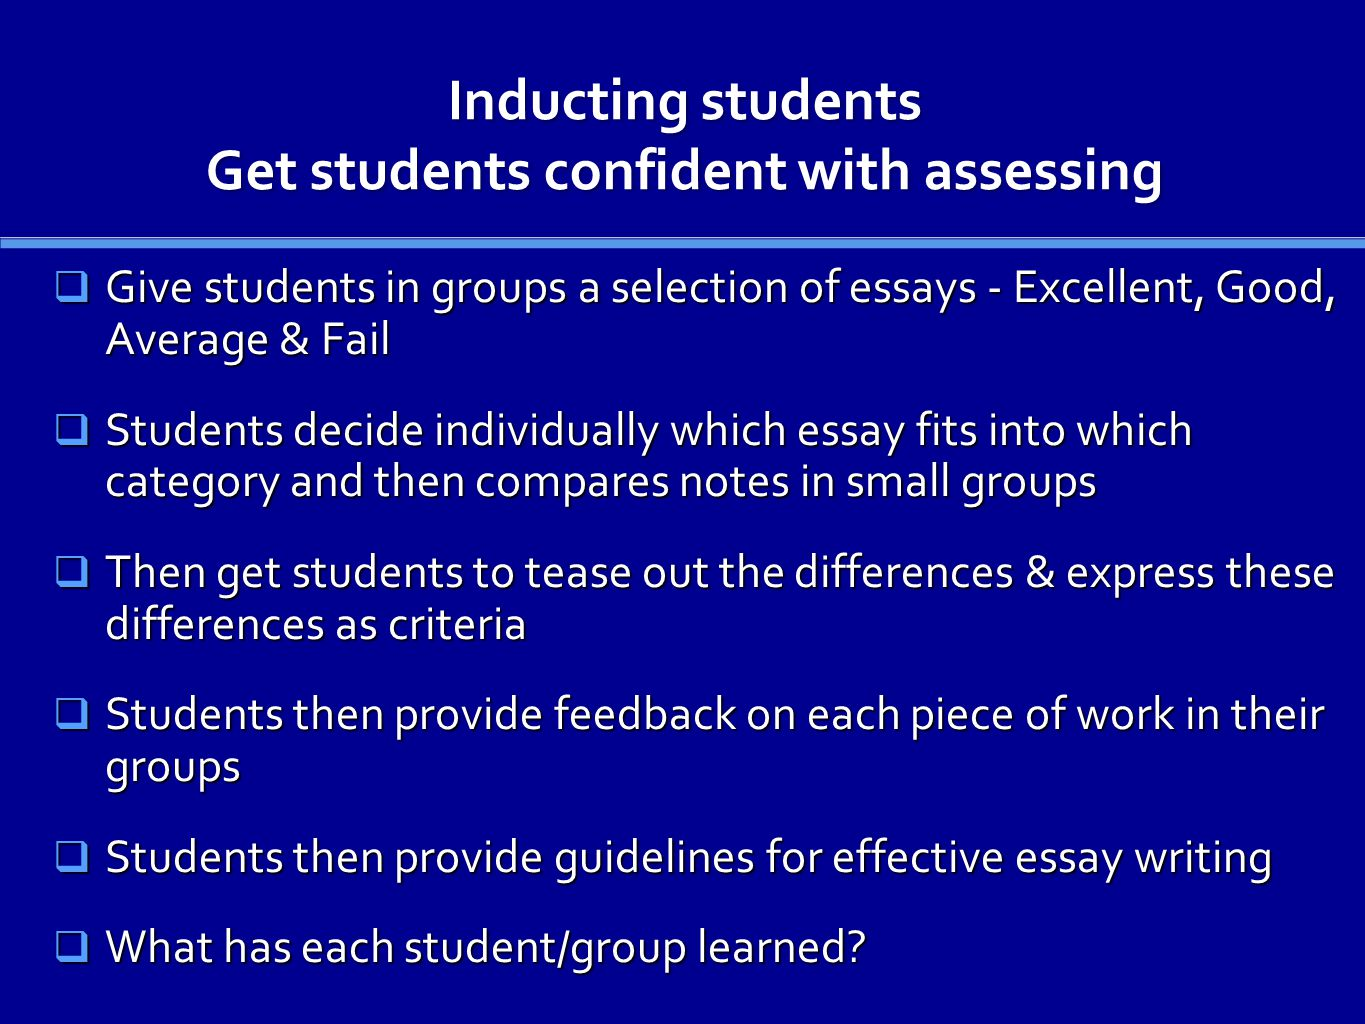 Inducting students Get students confident with assessing Give students in groups a selection of essays - Excellent, Good, Average & Fail Give students in groups a selection of essays - Excellent, Good, Average & Fail Students decide individually which essay fits into which category and then compares notes in small groups Students decide individually which essay fits into which category and then compares notes in small groups Then get students to tease out the differences & express these differences as criteria Then get students to tease out the differences & express these differences as criteria Students then provide feedback on each piece of work in their groups Students then provide feedback on each piece of work in their groups Students then provide guidelines for effective essay writing Students then provide guidelines for effective essay writing What has each student/group learned.